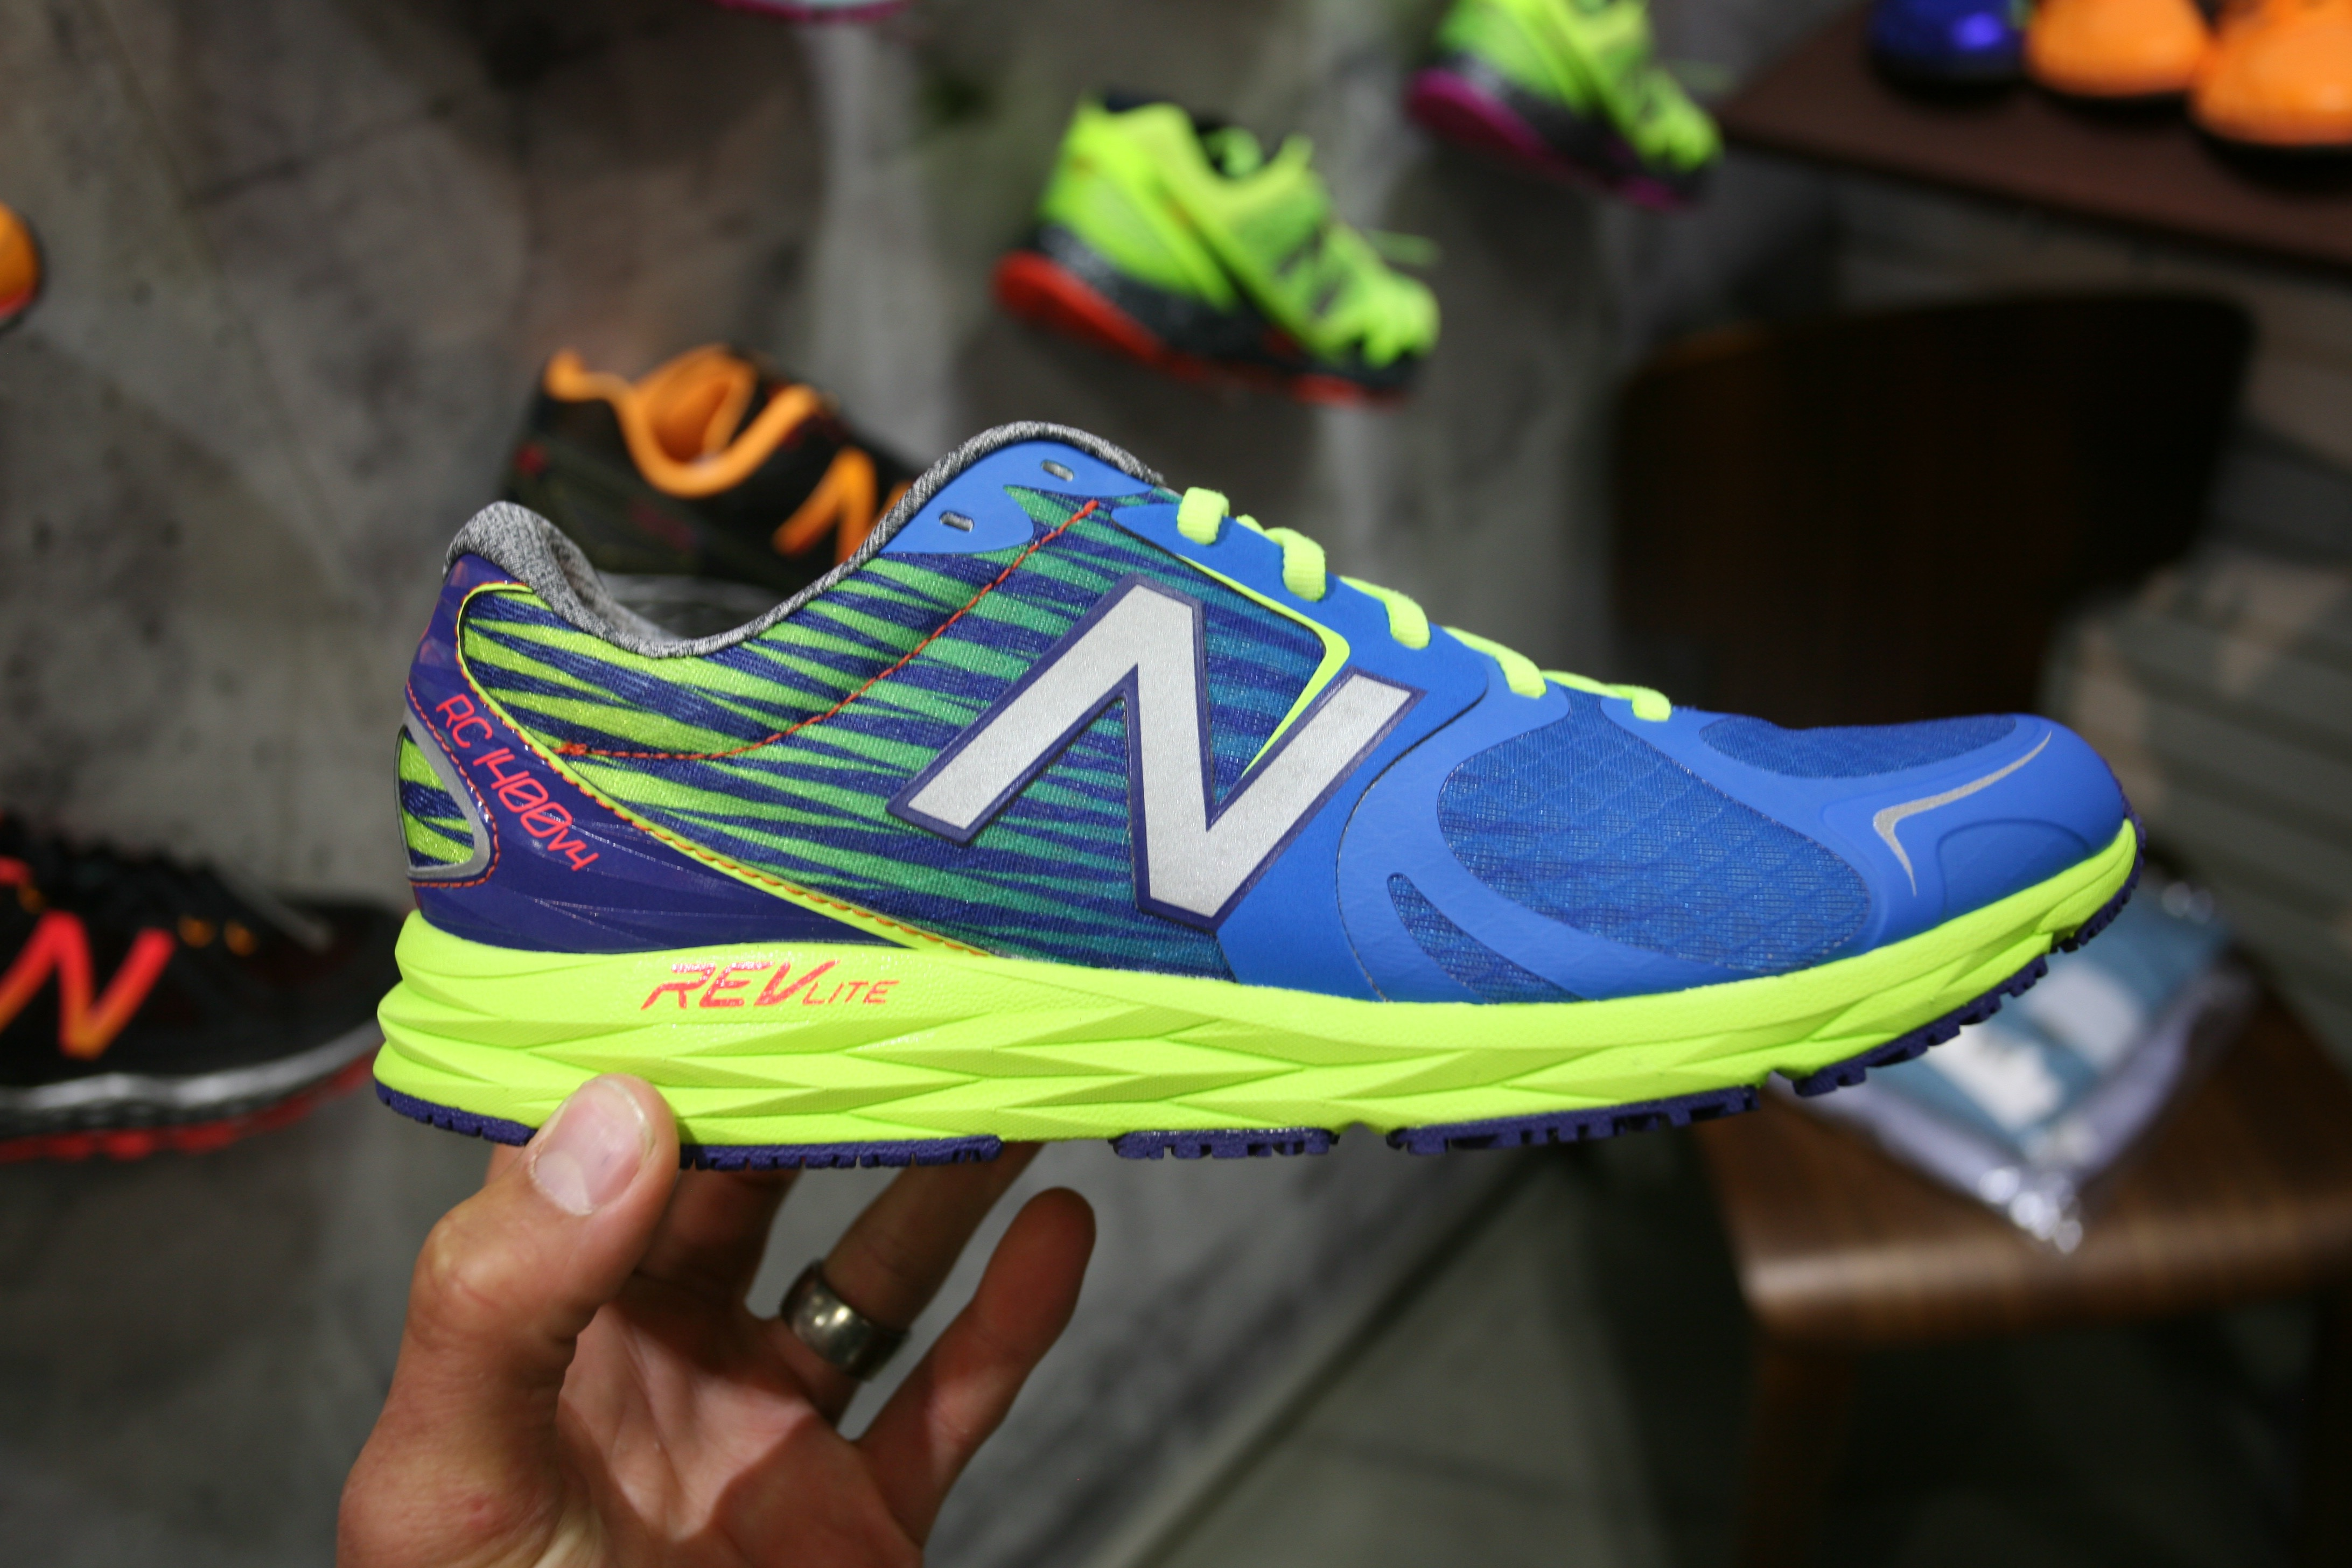 latest new balance running shoes